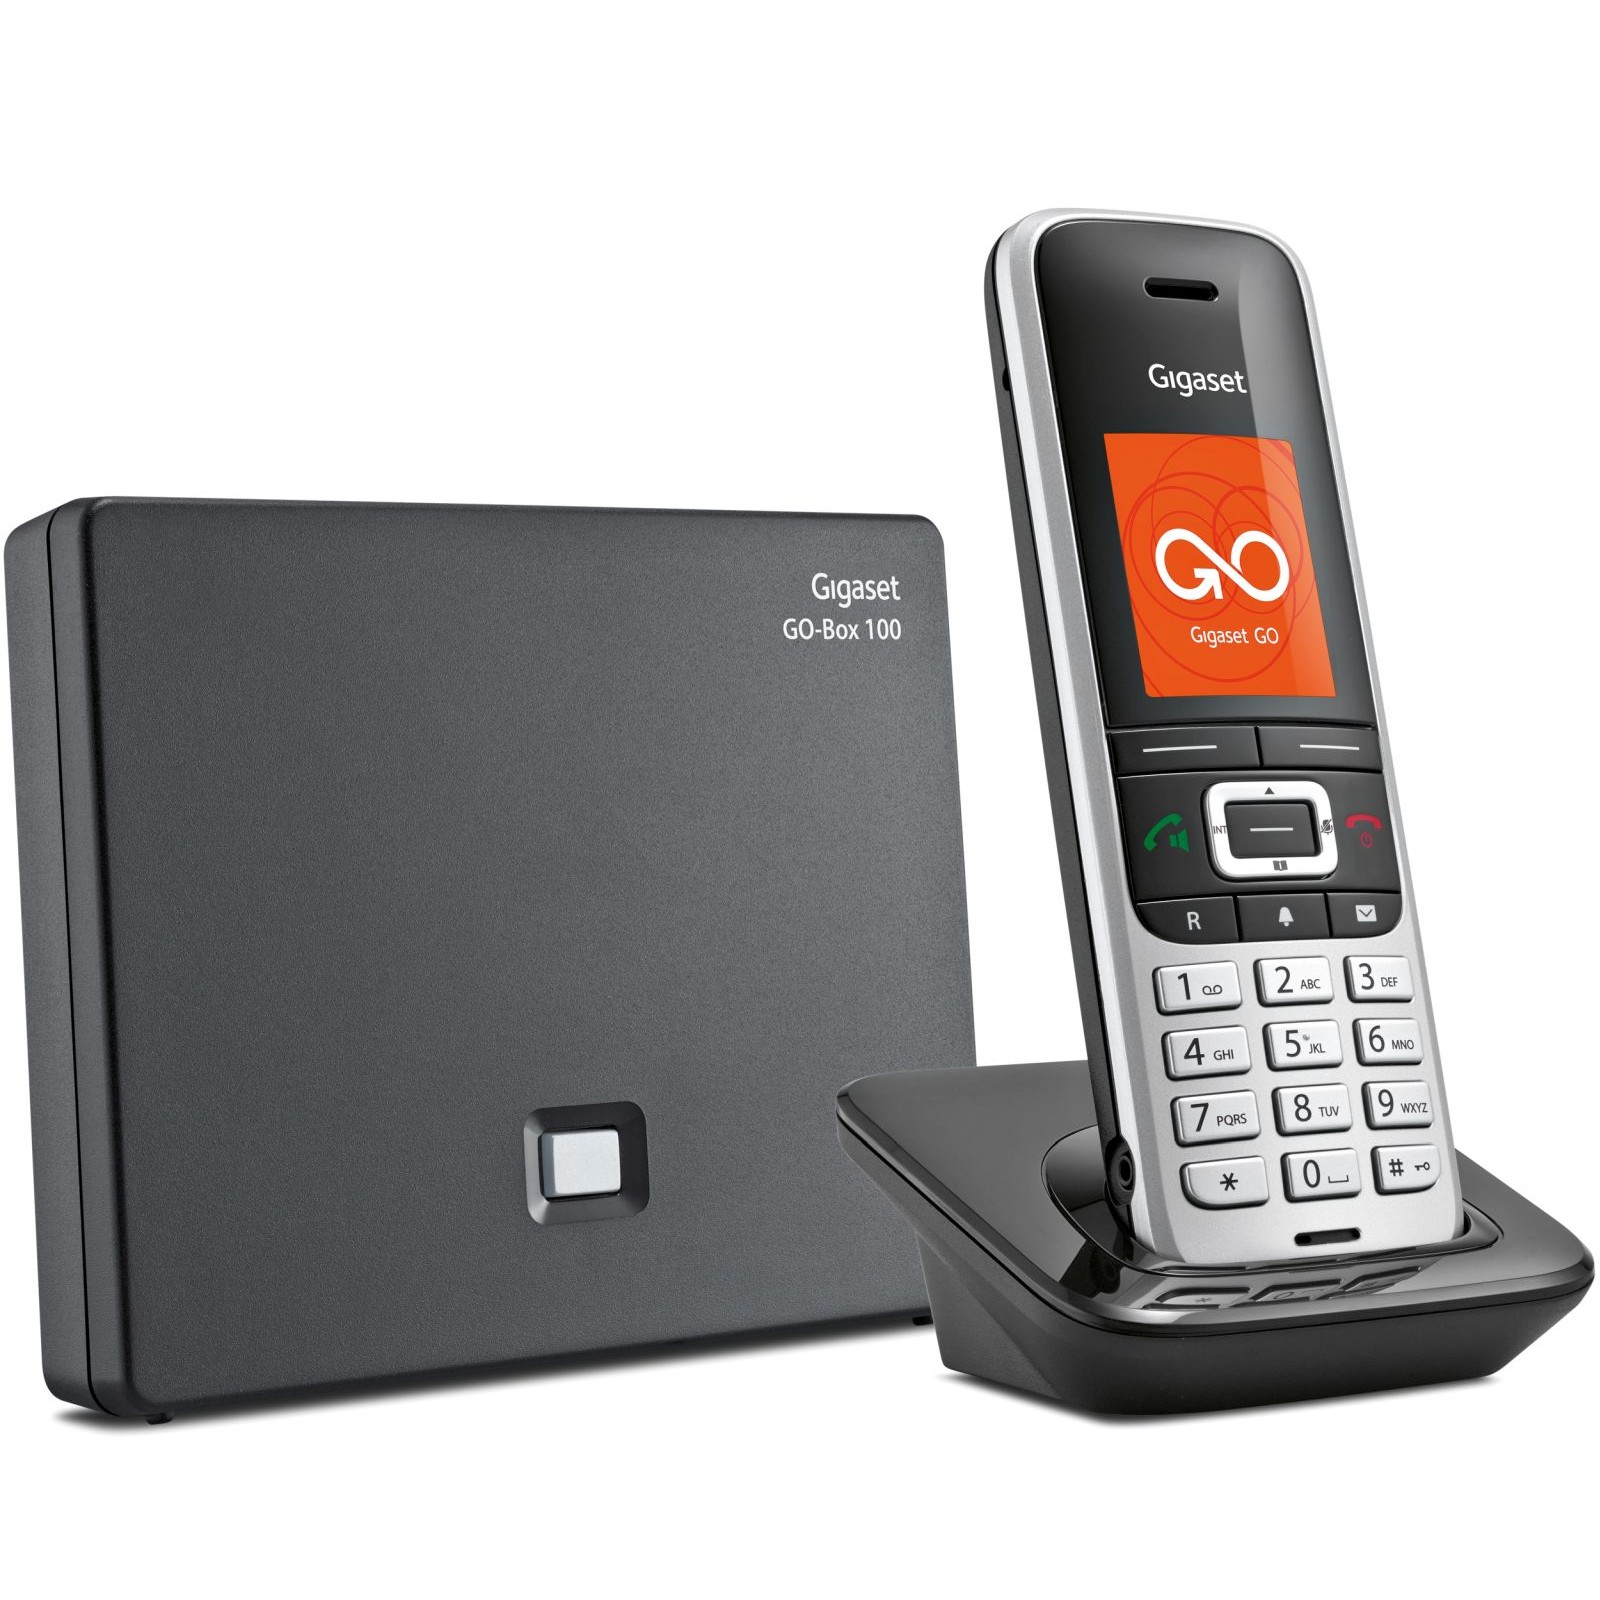 siemens gigaset s850a go cordless phone. Black Bedroom Furniture Sets. Home Design Ideas